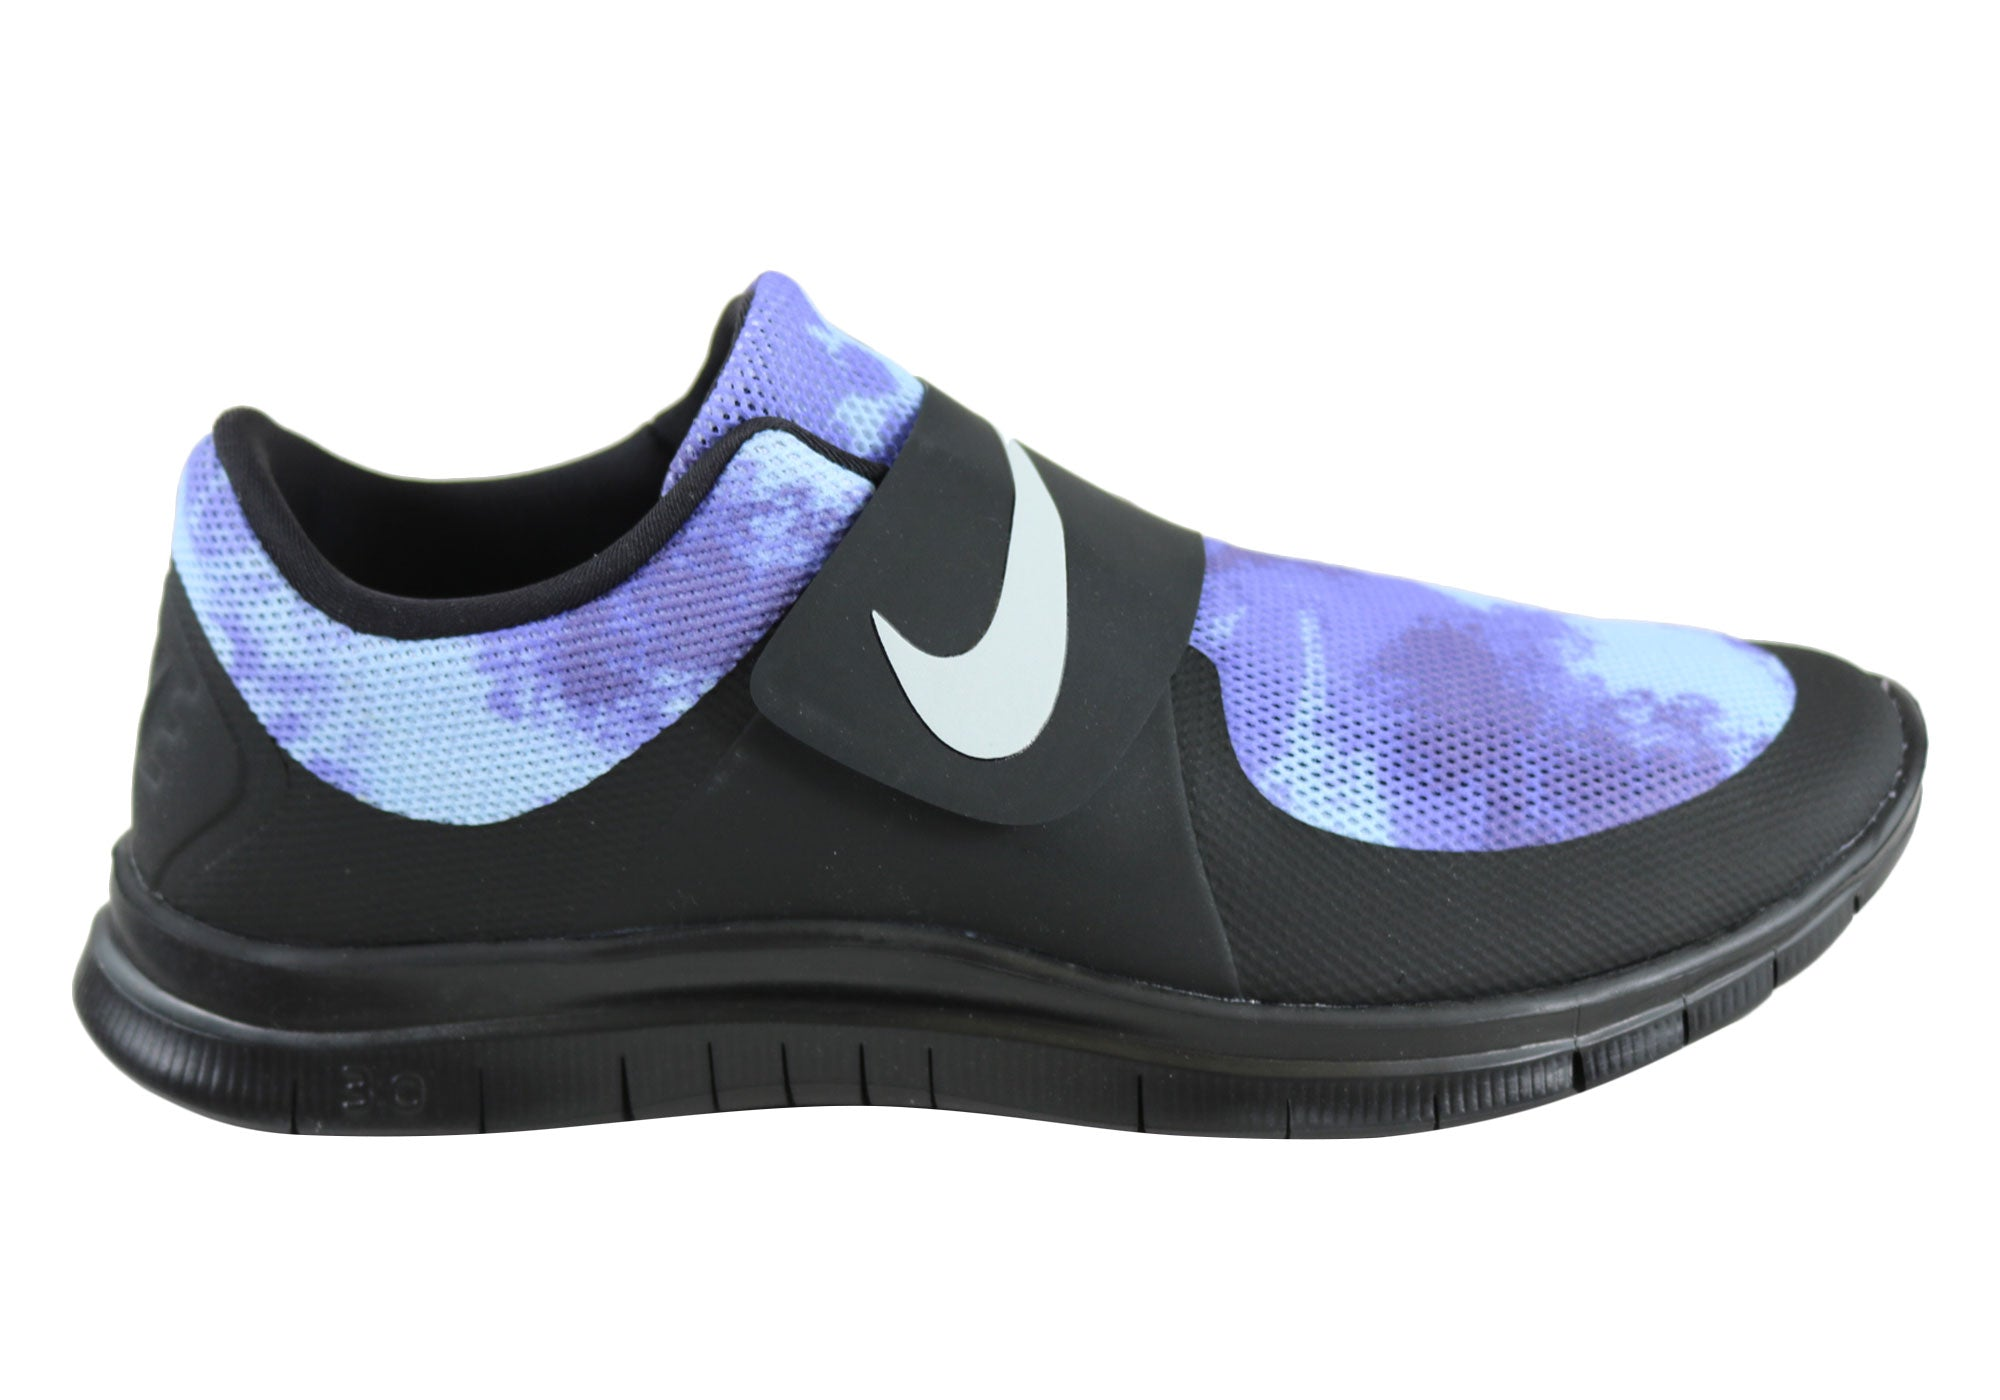 ada463f0d7dd Mens Nike Free Socfly Sd Slip On Comfortable Lightweight Running ...